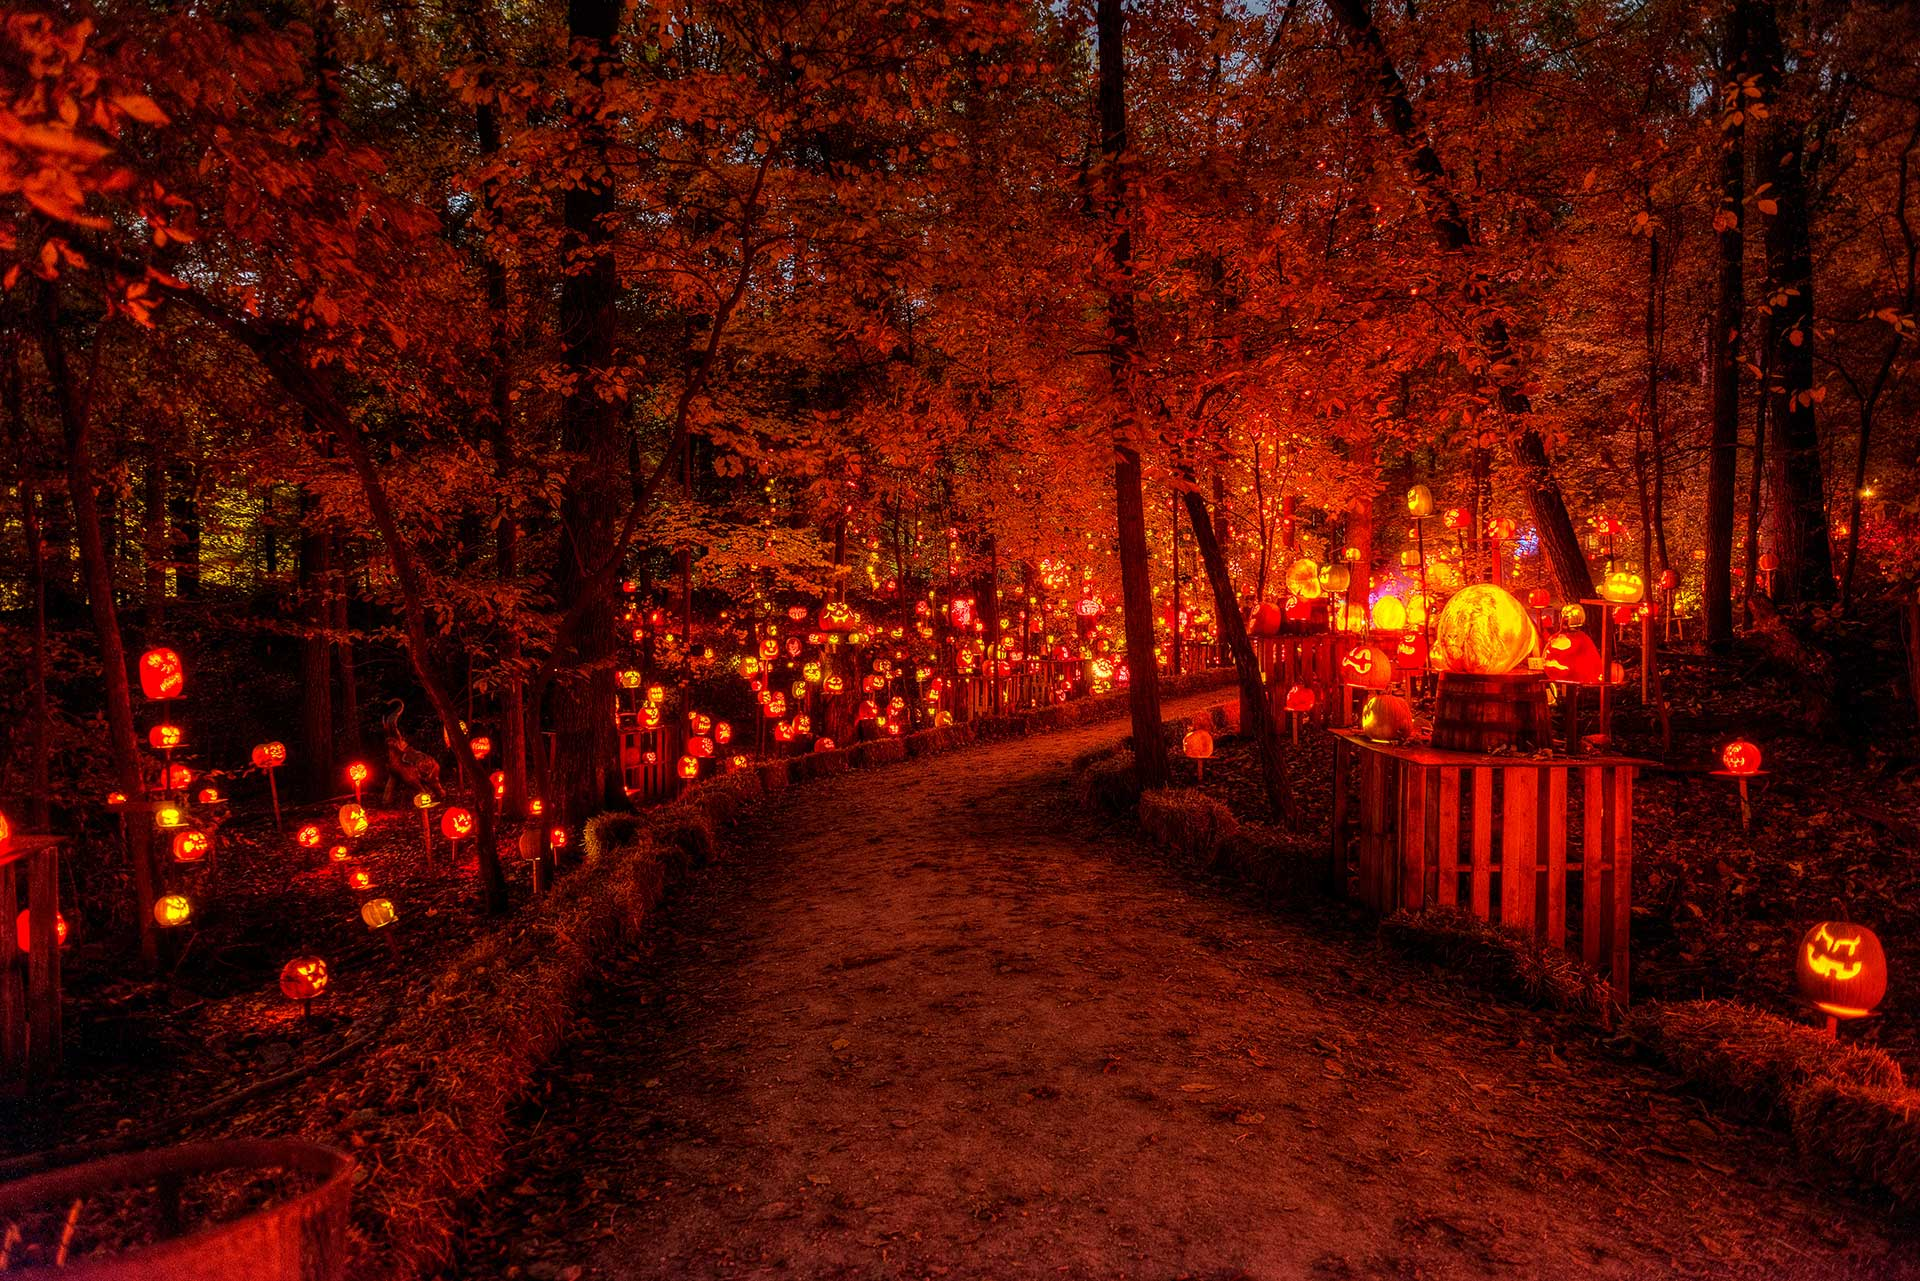 A darkened path illuminated by ornately carved pumpkins